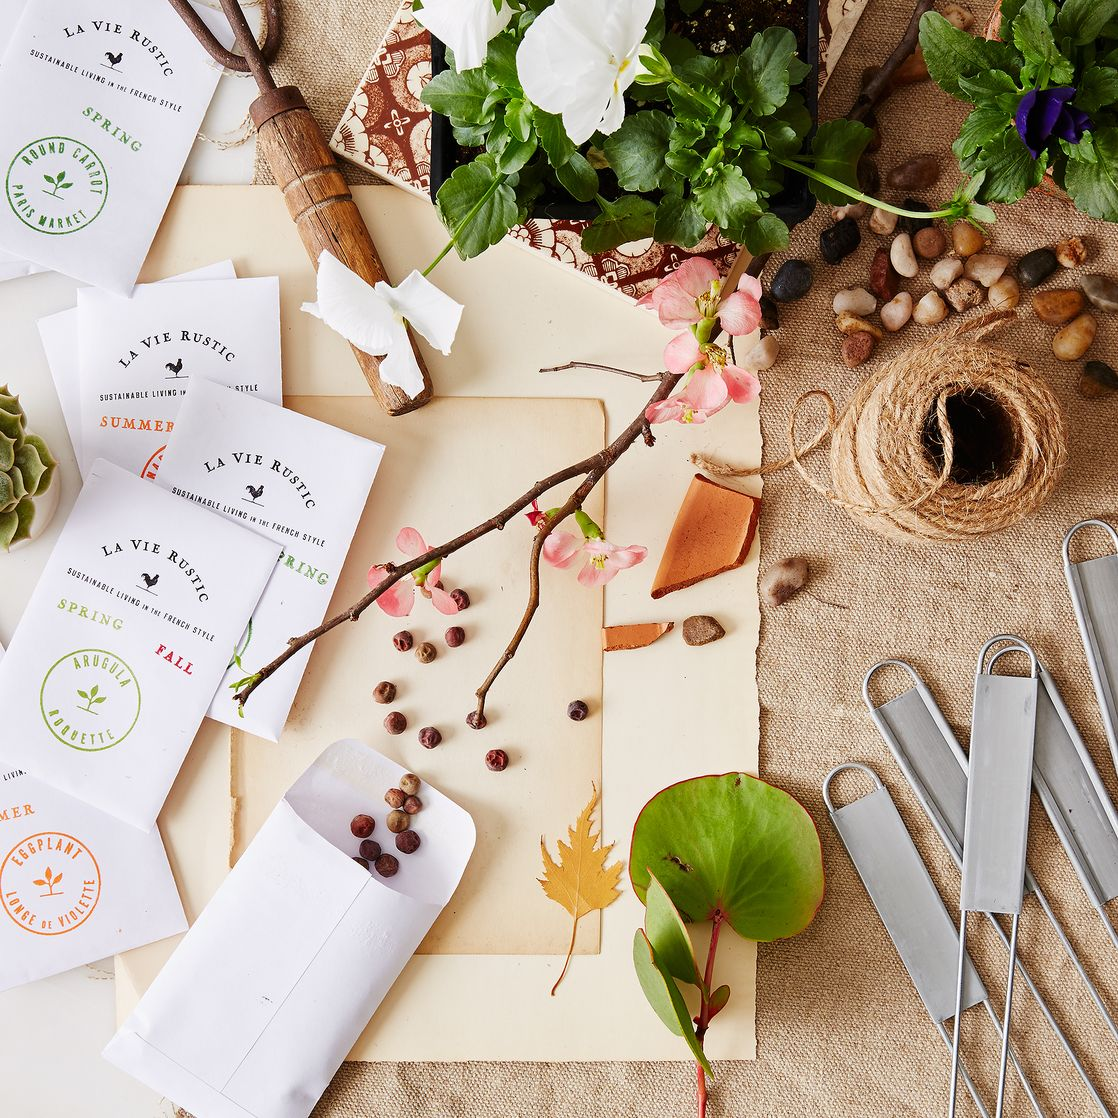 Year round Potager Garden Seed Set on Food52